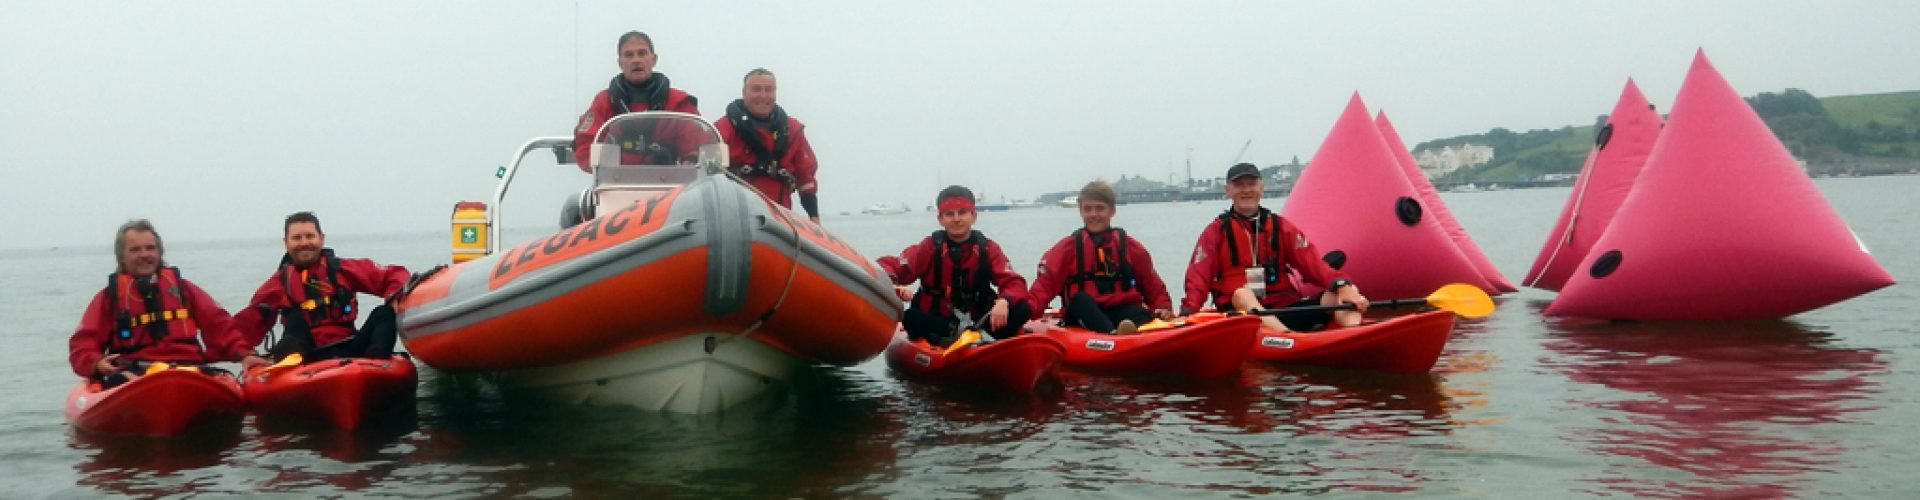 https://www.rlss-poole.org.uk/wp-content/uploads/2016/06/cropped-DSCN1952_001.jpg